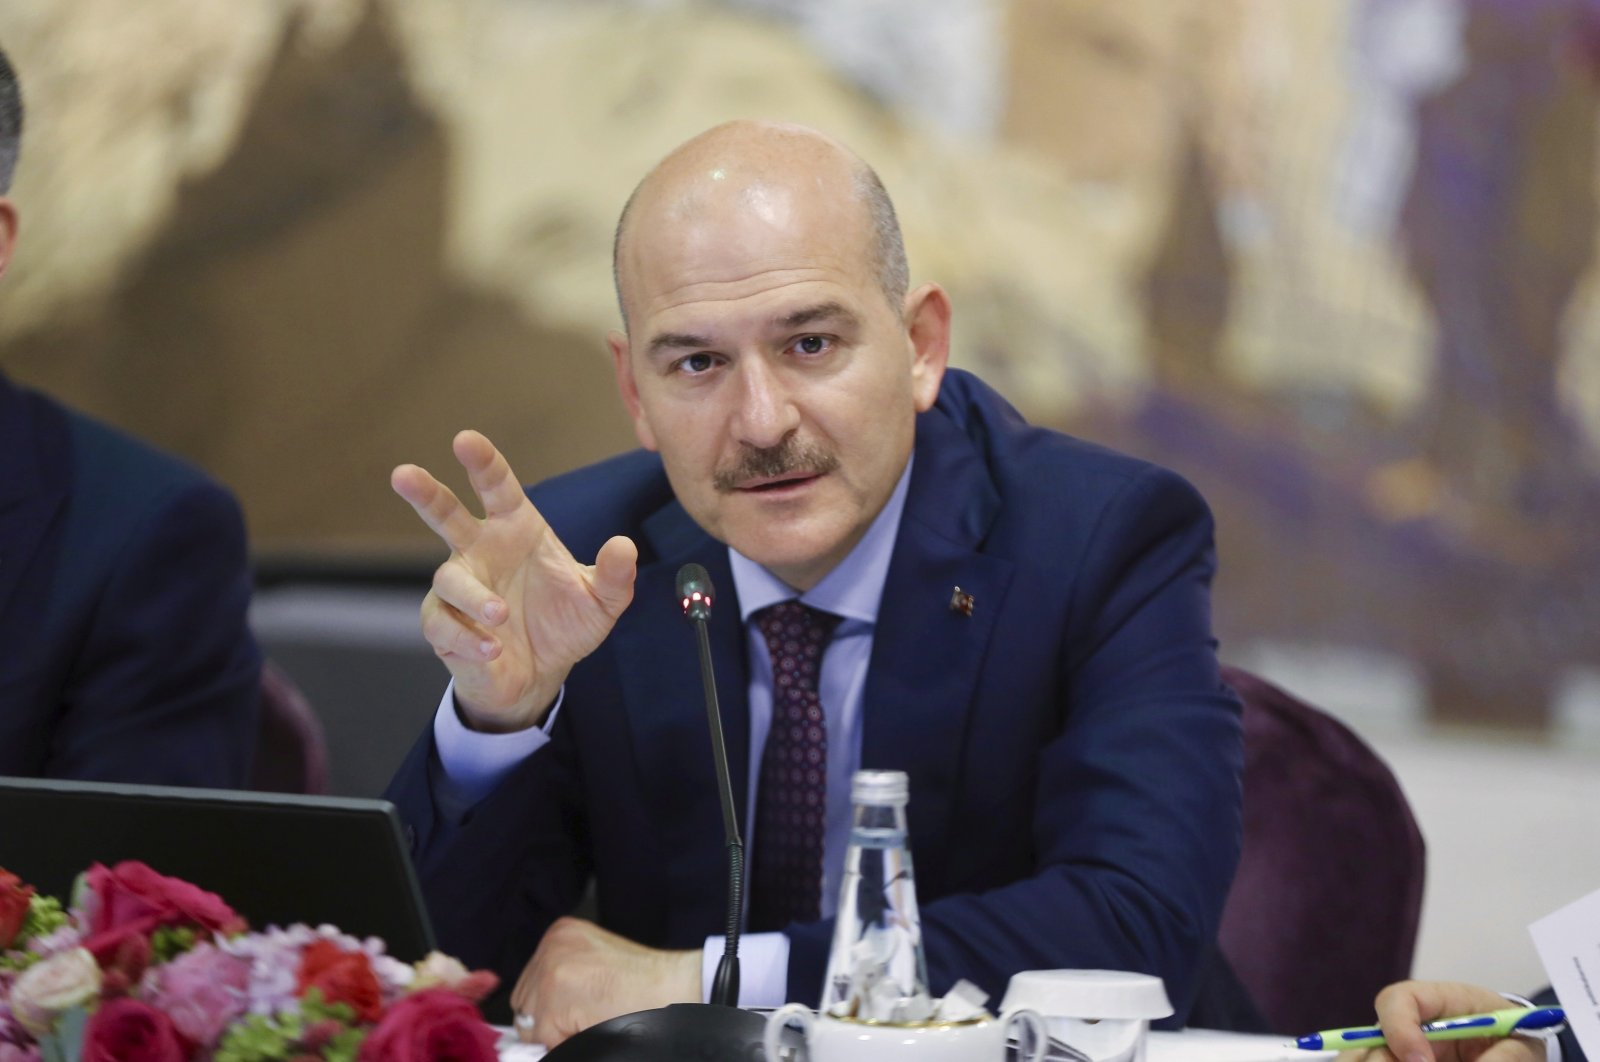 Interior Minister Süleyman Soylu speaks during a news conference in Istanbul, Turkey, Aug. 21, 2019.  (AP File Photo)